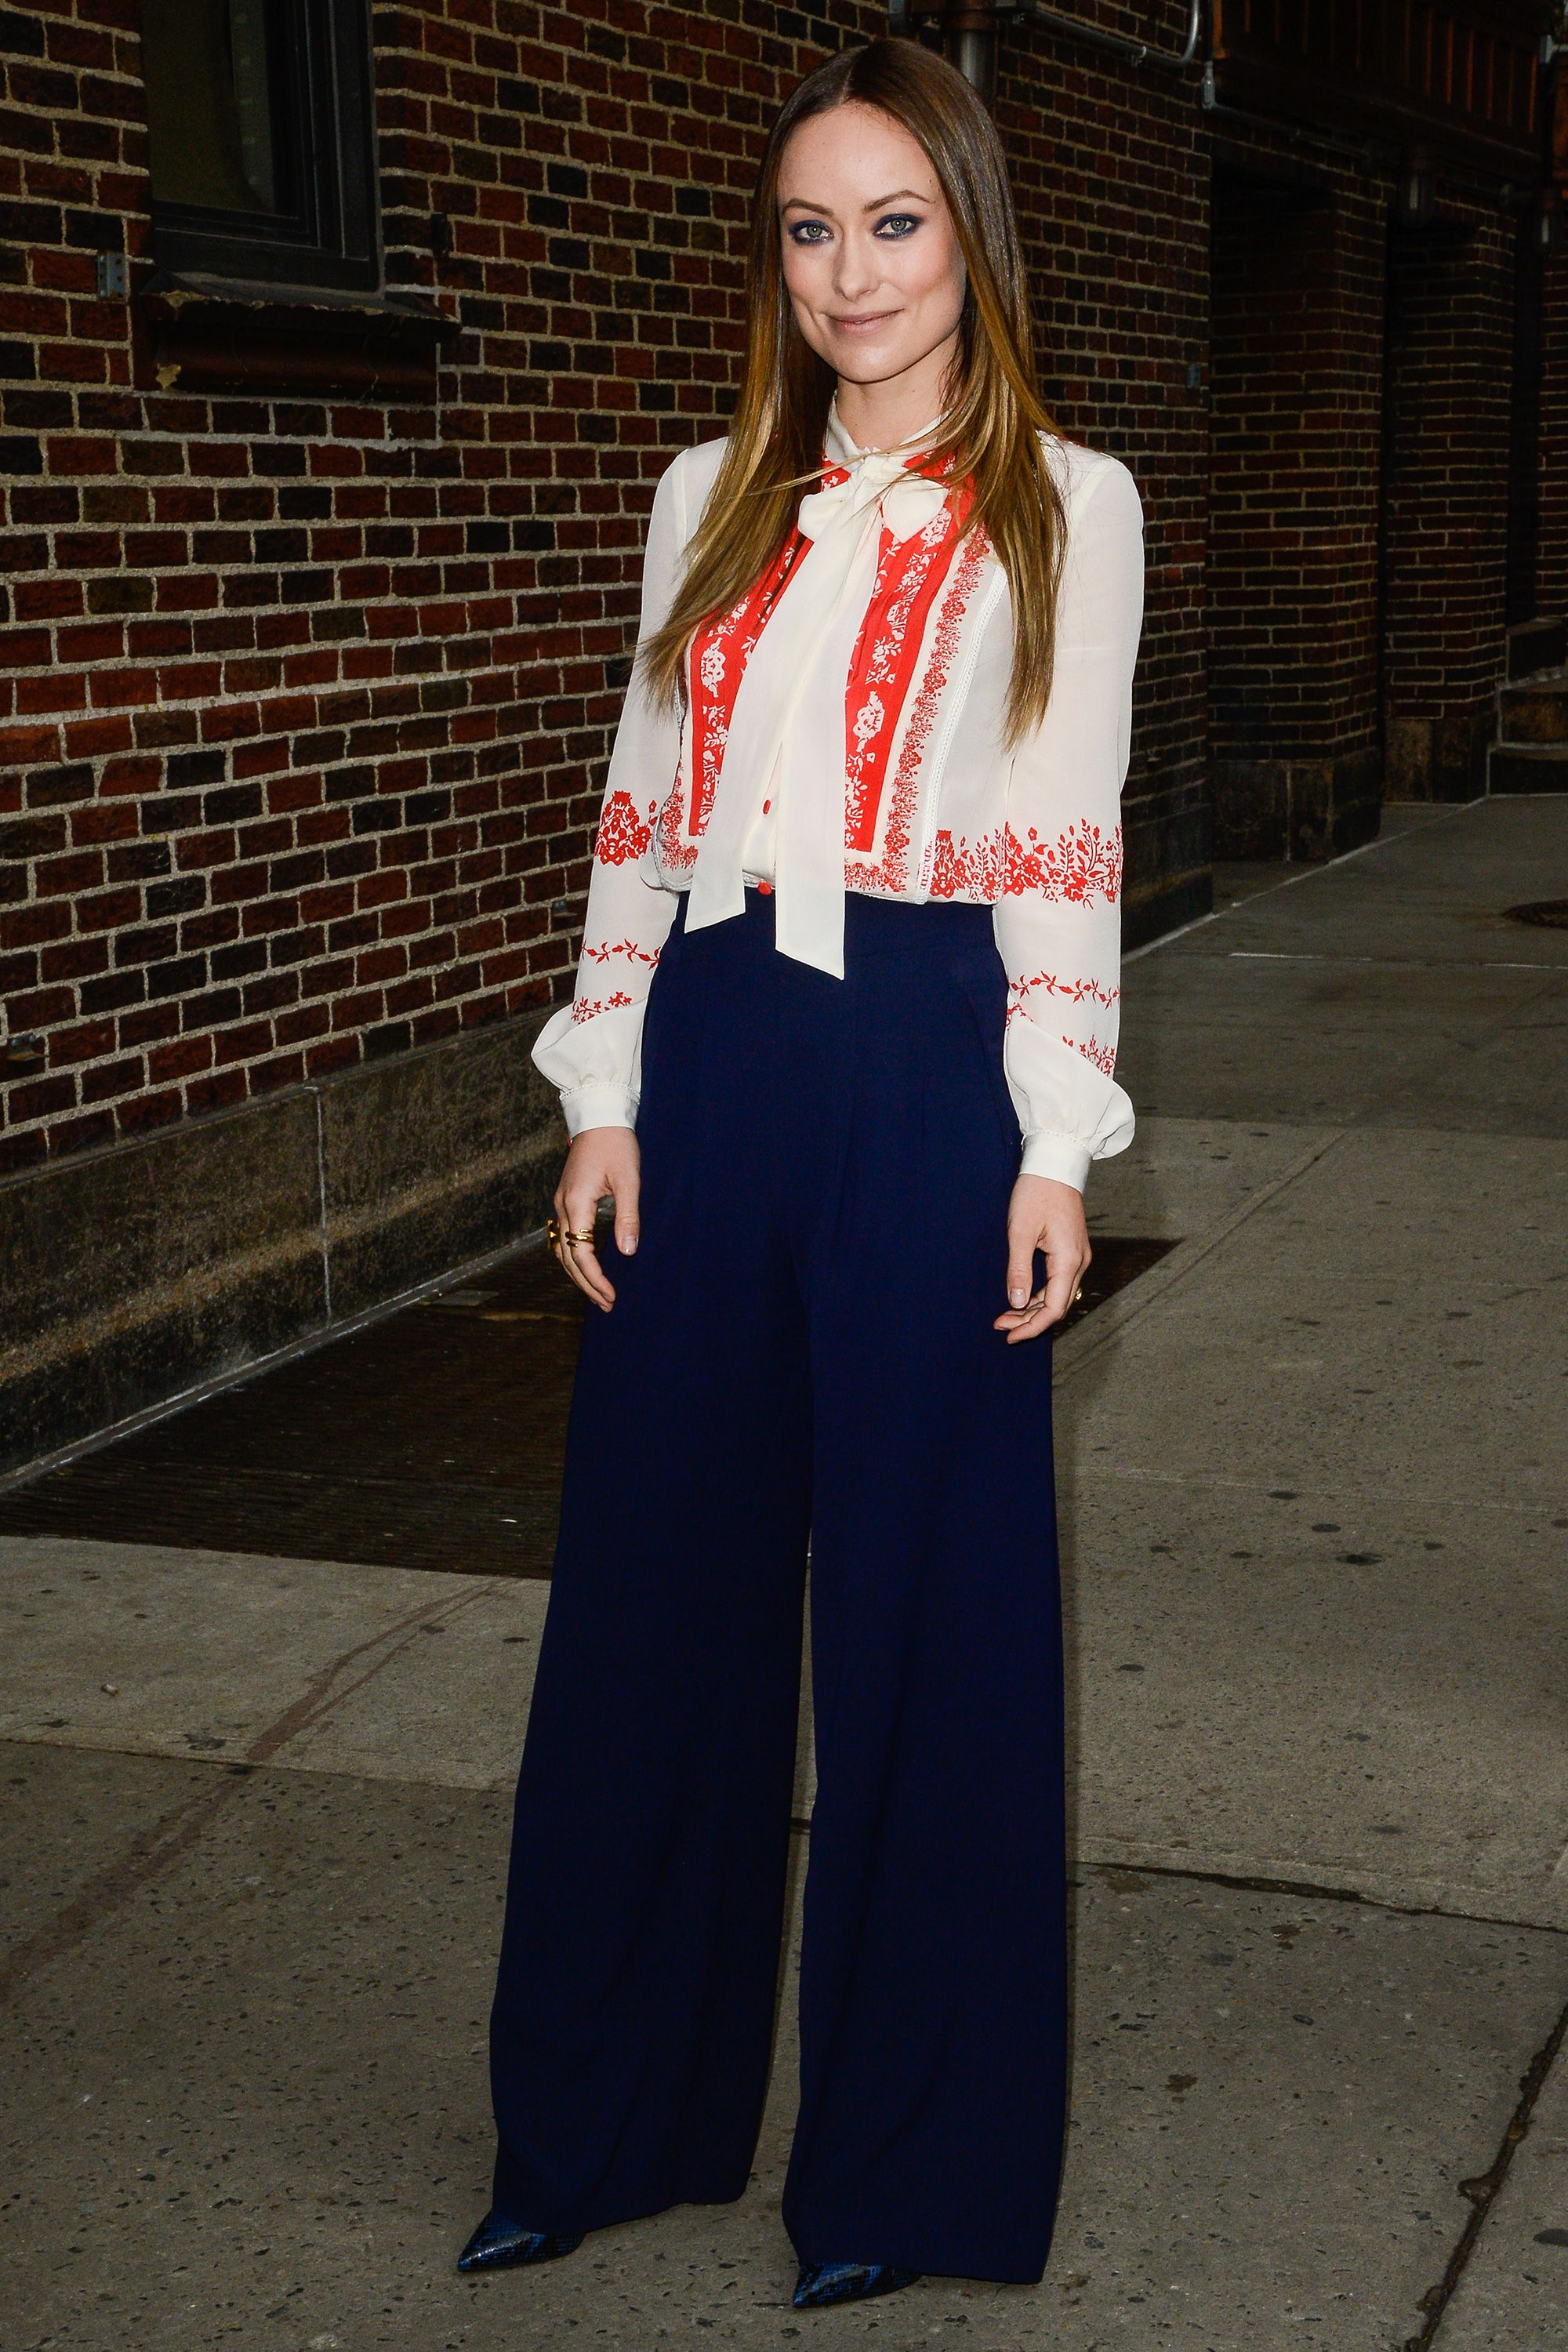 9 February Olivia Wilde wore wide-legged trousers and a printed blouse for an appearance on The Late Show With Stephen Colbert.   - HarpersBAZAAR.co.uk